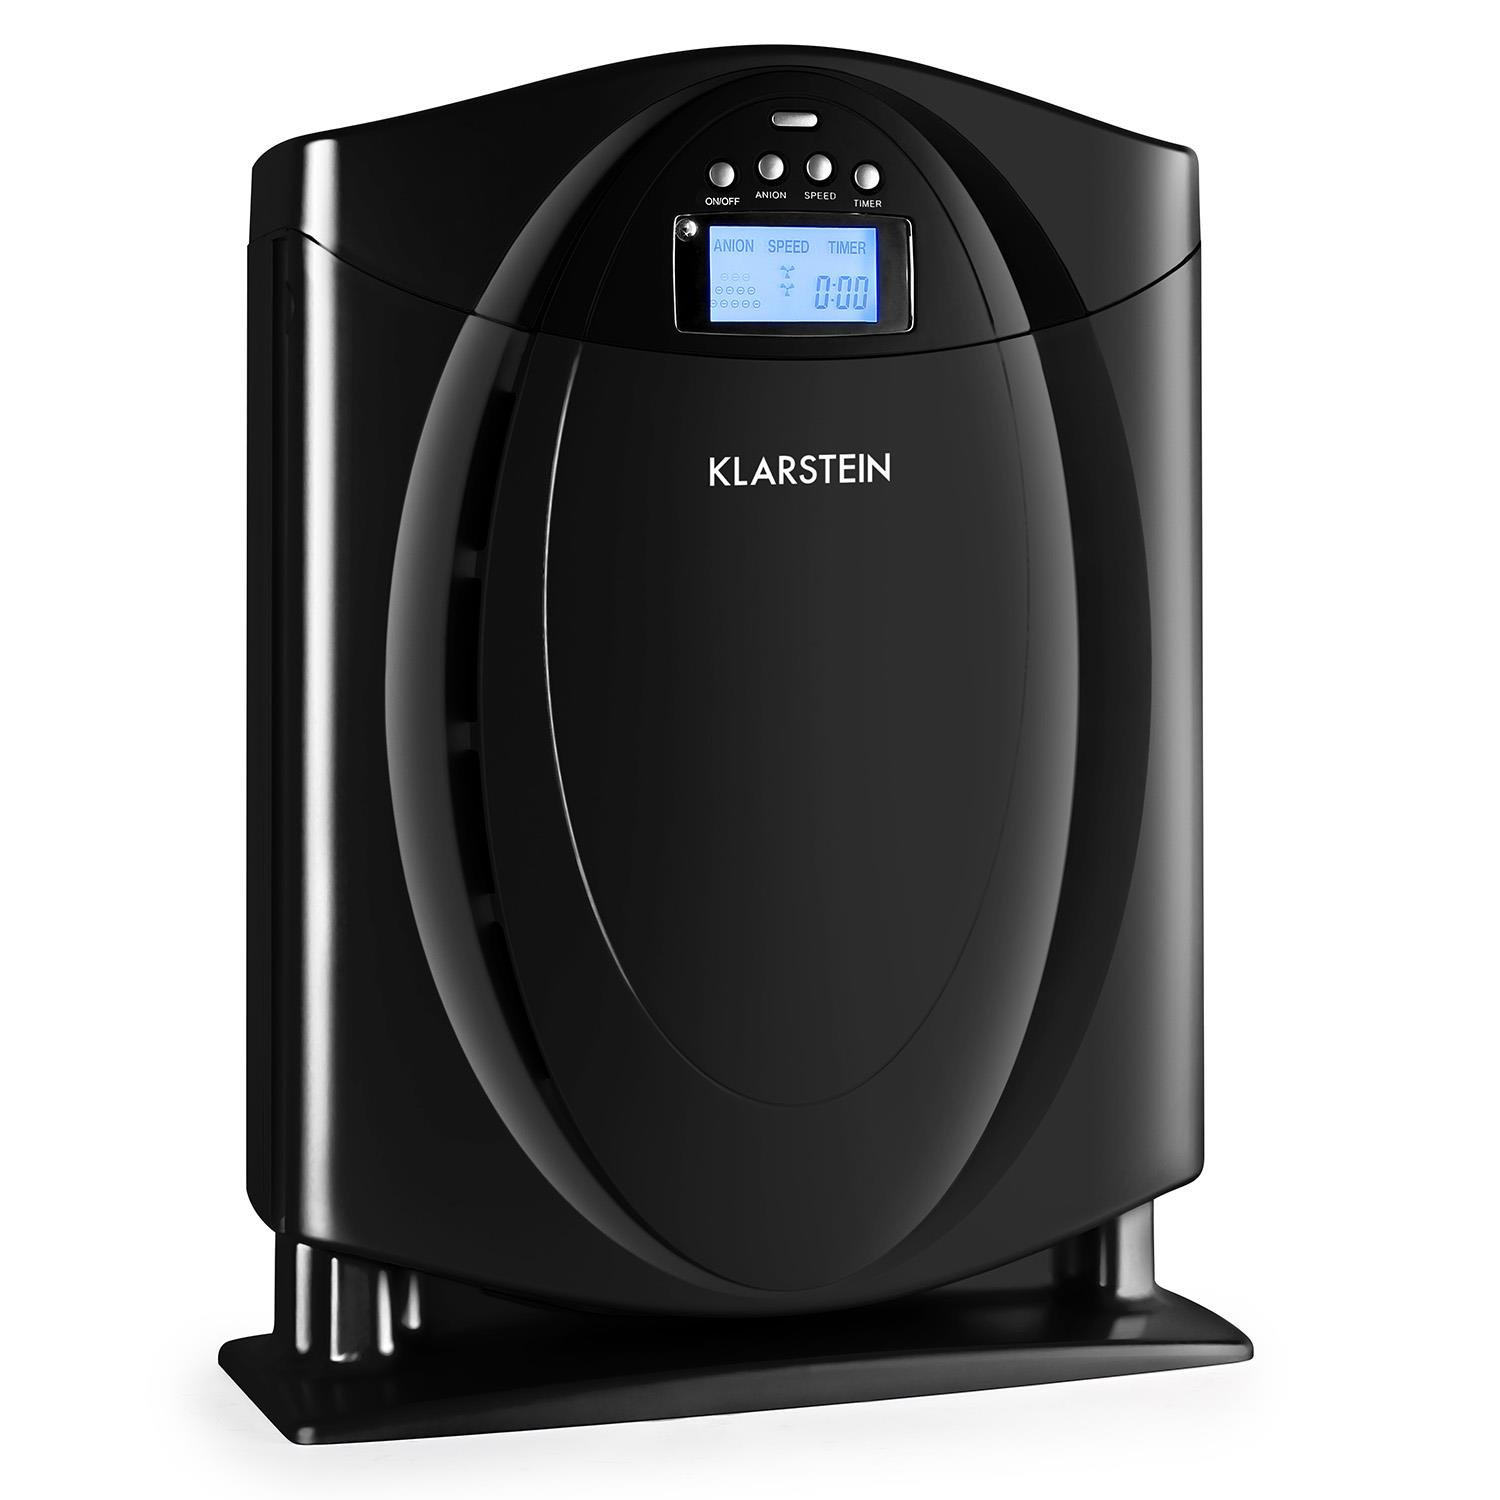 KLARSTEIN Grenoble 4-in-1 Air Purifier with HEPA Filter Switchable Ionizer Allergen, Odors, Smoke, Dust Remover Quiet Operation LCD Display Memory function Black